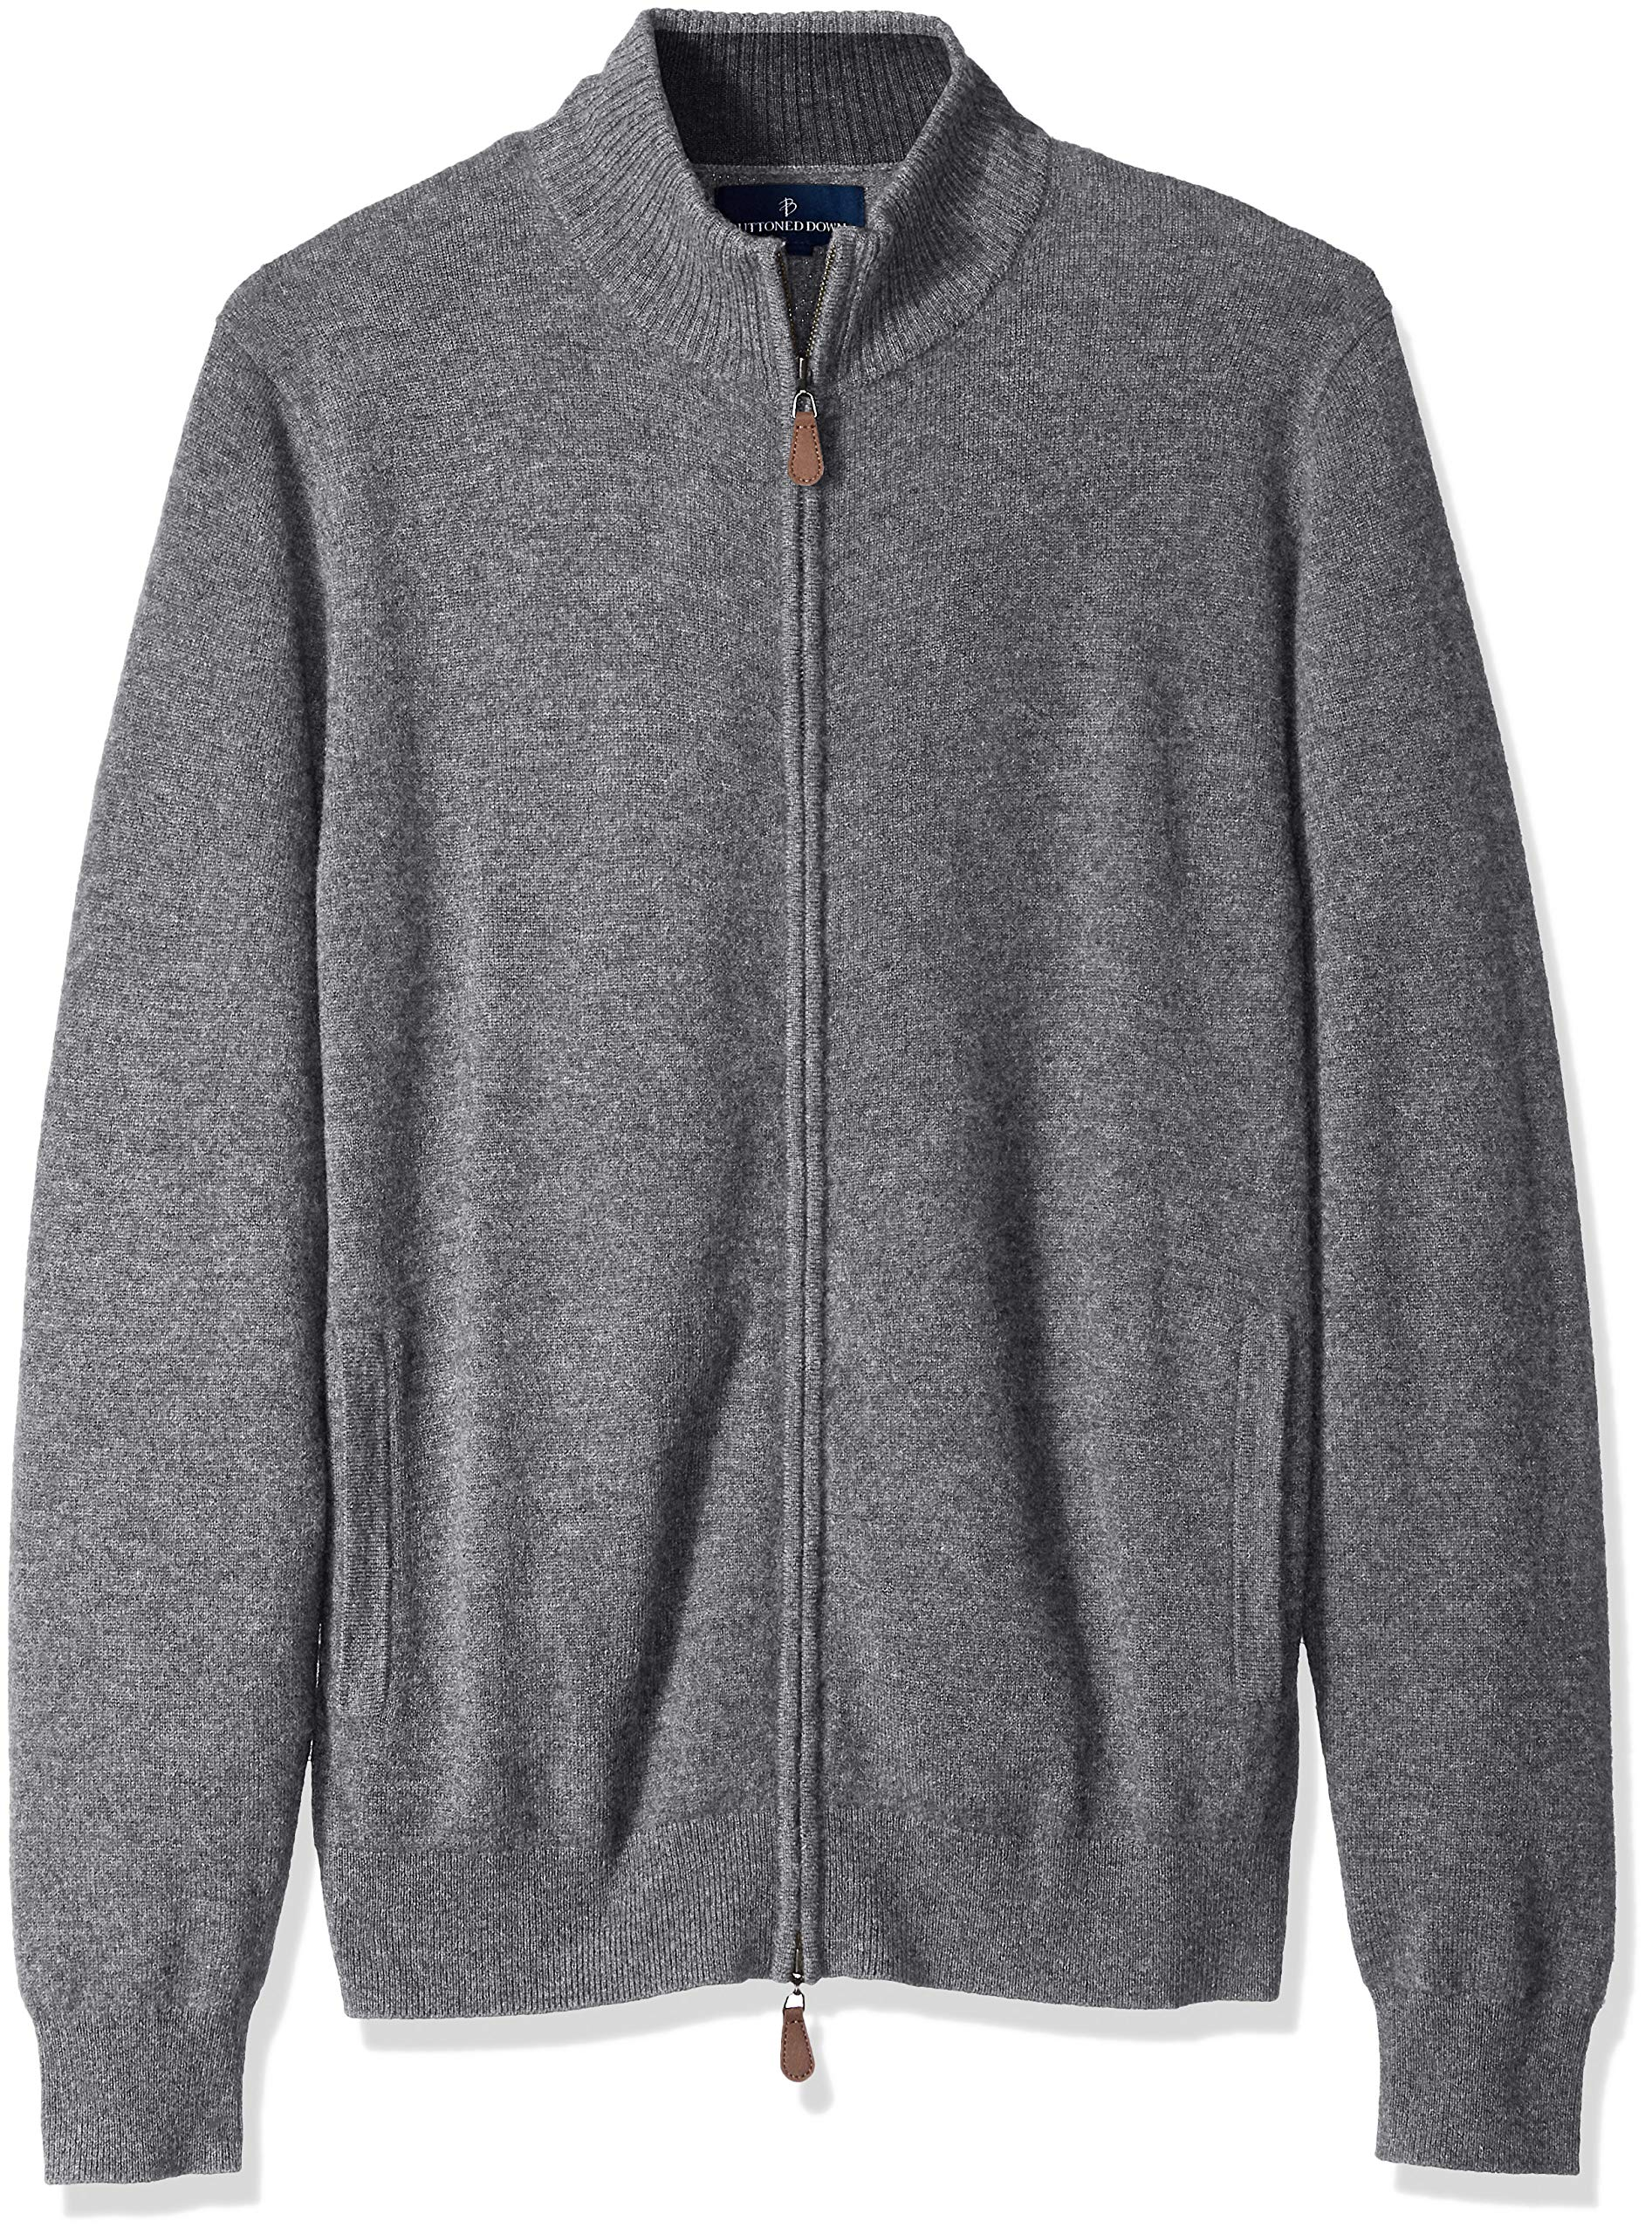 BUTTONED DOWN Men's 100% Premium Cashmere Full-Zip Sweater, Grey, Large by Buttoned Down